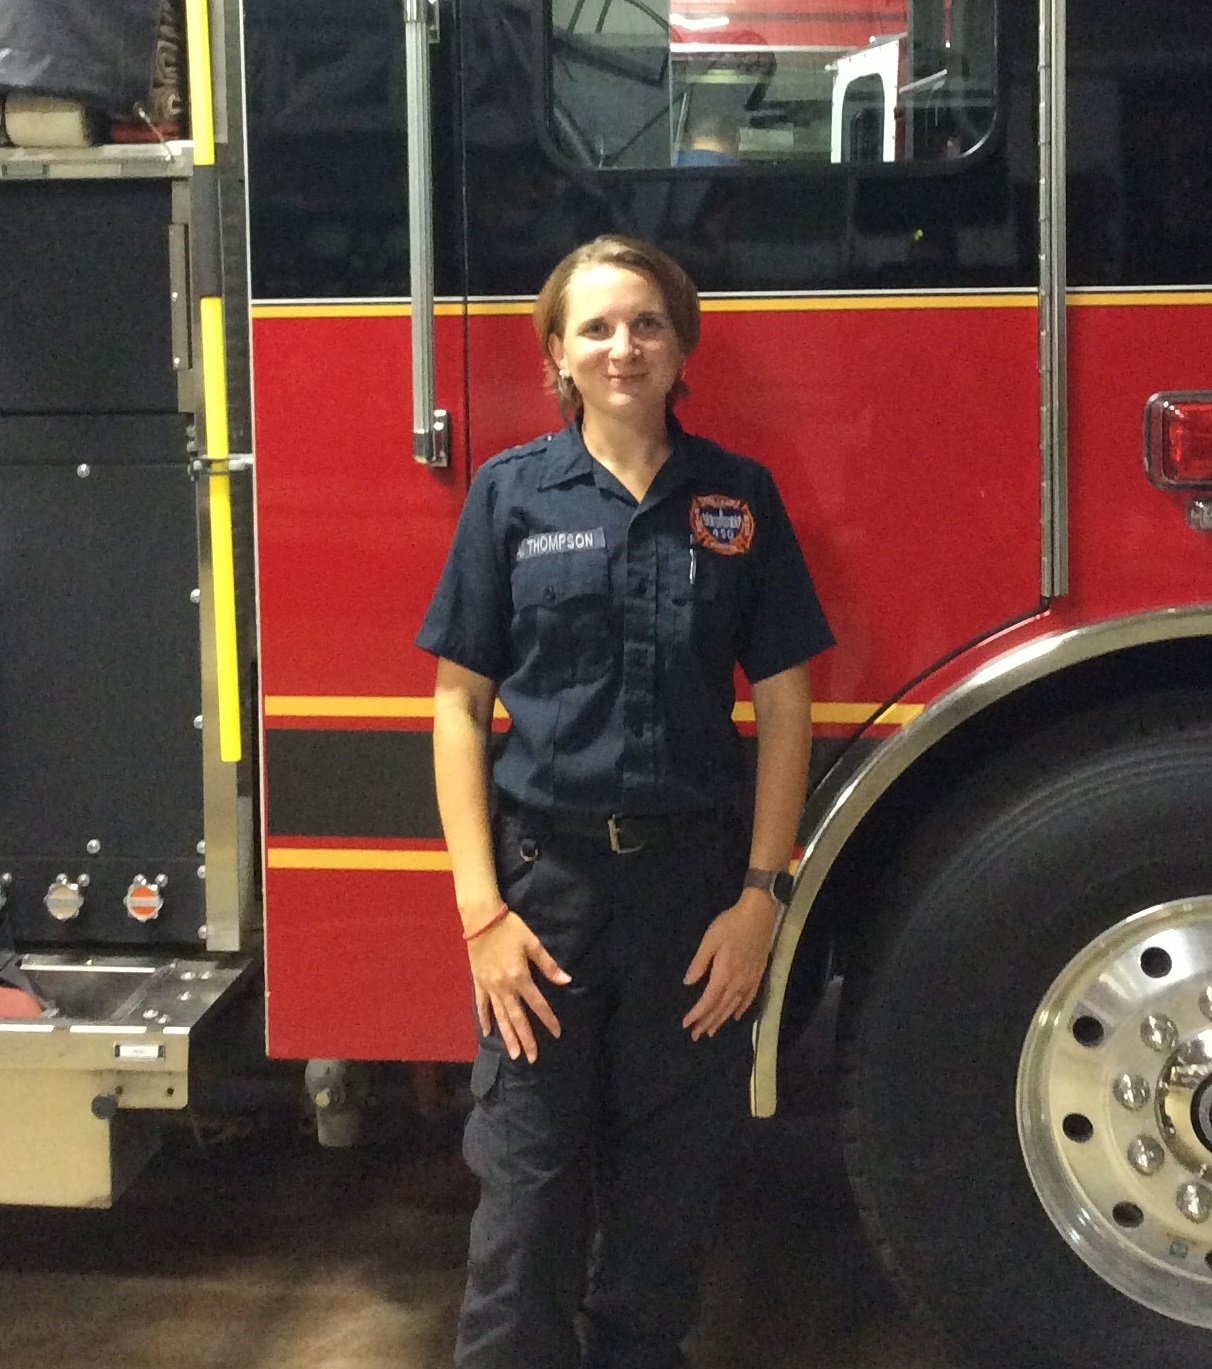 Ashley Thompson- Assistant Chief 452 - Firefighter II, Advanced EMT- Paramedic Student